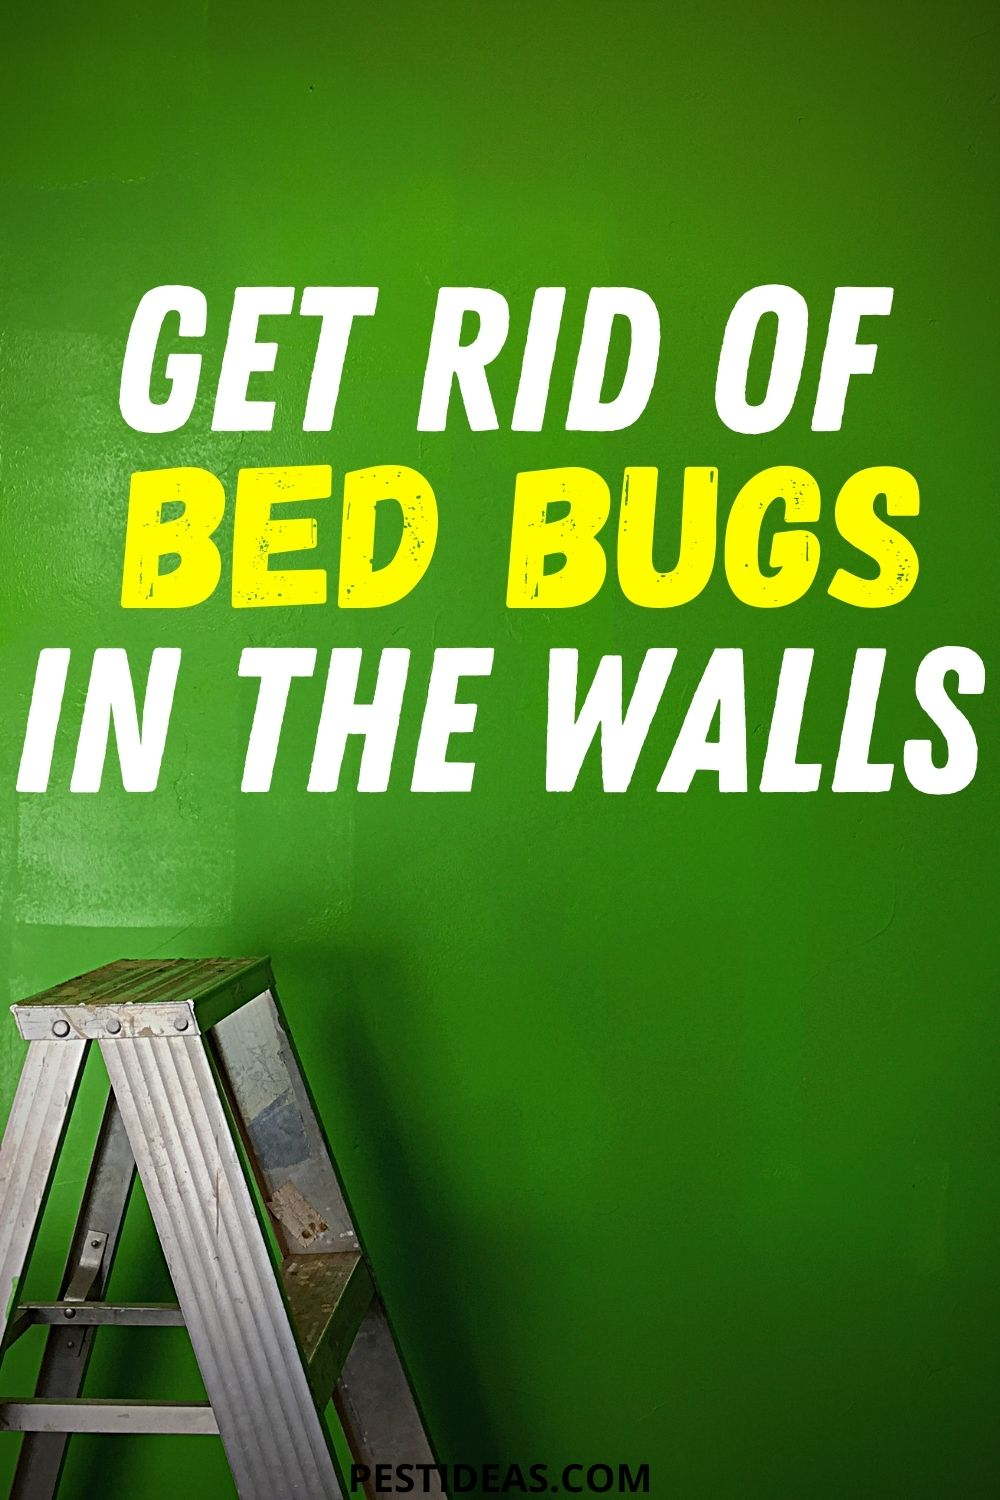 Get Rid of Bed Bugs in The Walls